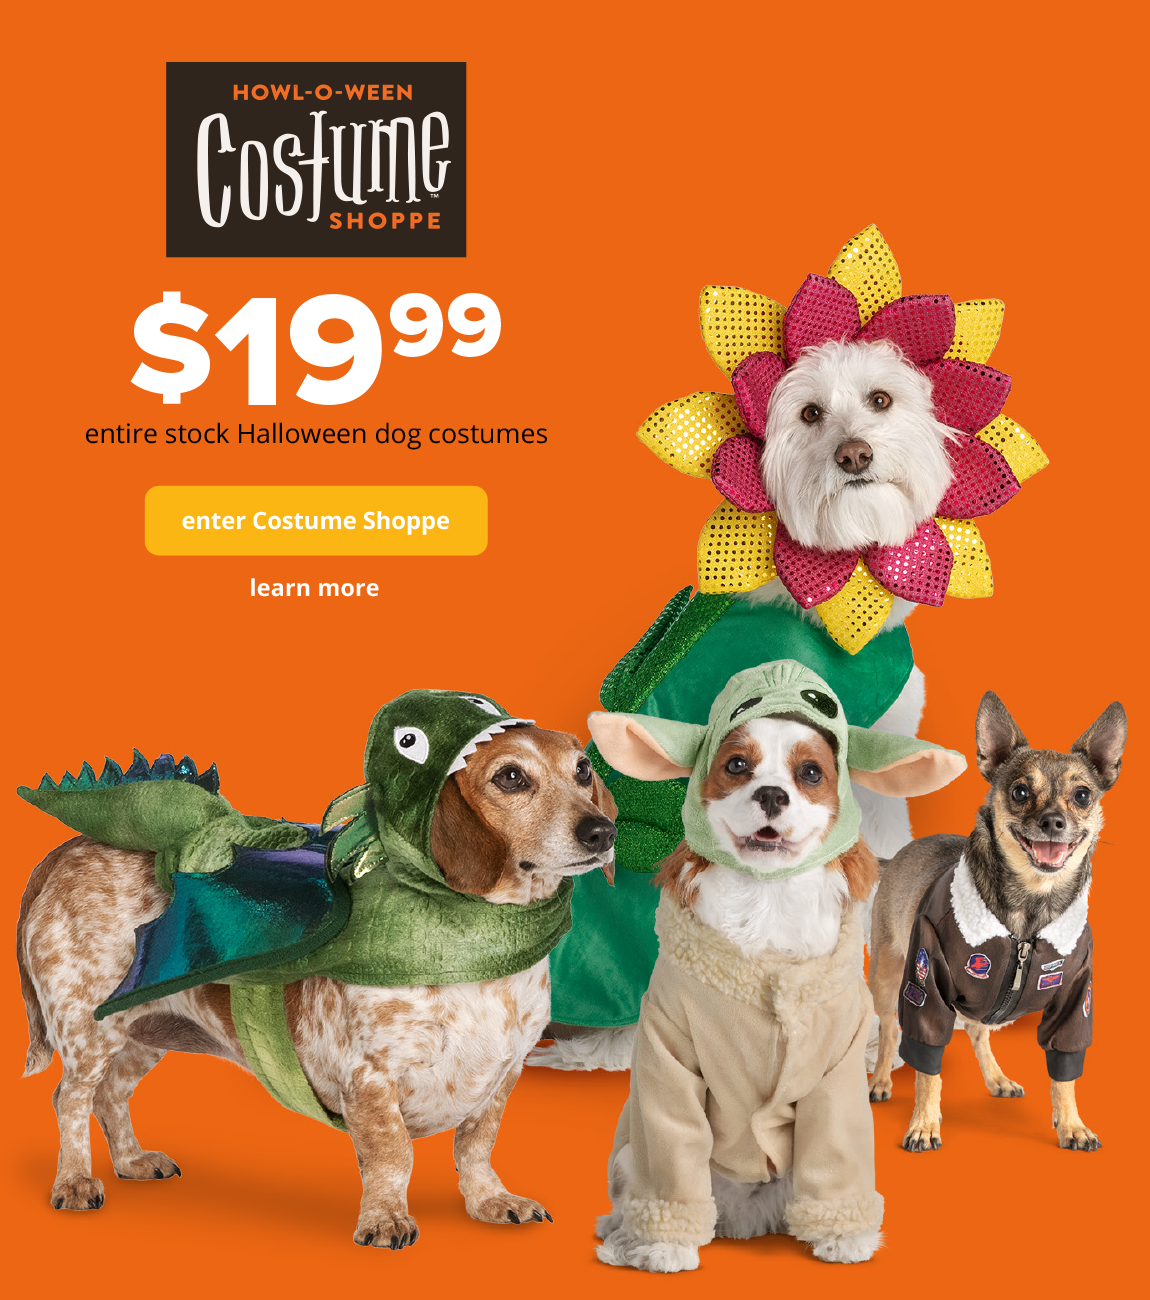 $19.99 entire stock Halloween dog costumes *enter Costume Shoppe*